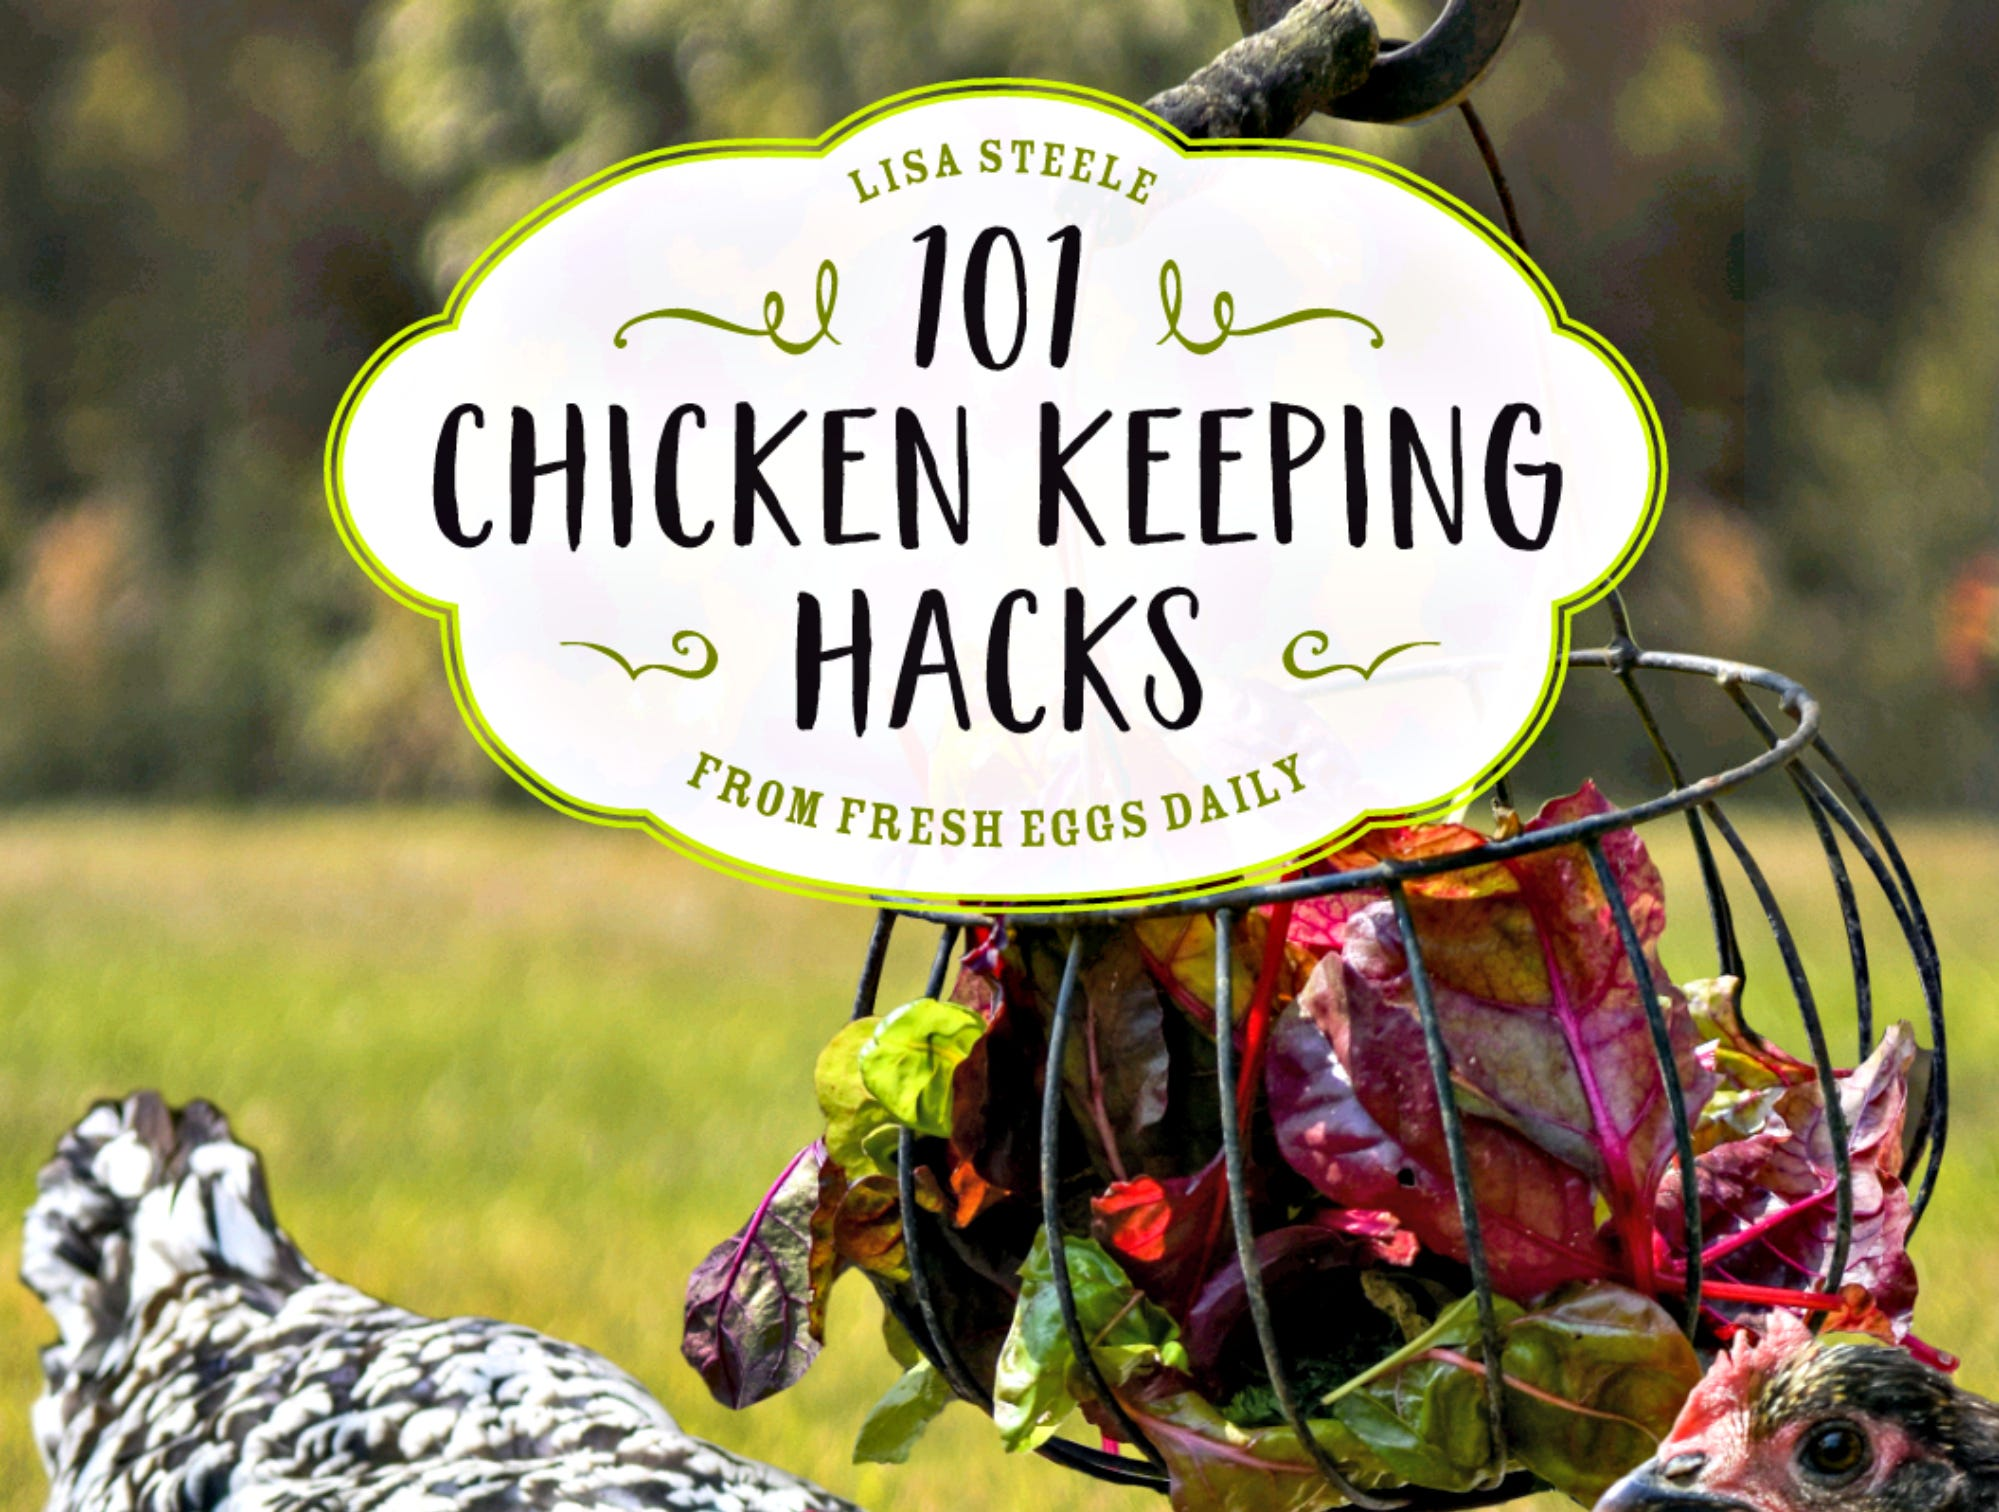 "Fresh Eggs Daily proprietor Lisa Steele is tapping into the chickens-as-pampered-pets trend with her latest book, ""101 Chicken Hacks from Fresh Eggs Daily: Tips, Tricks and Ideas for You and Your Hens."" It was published in October."